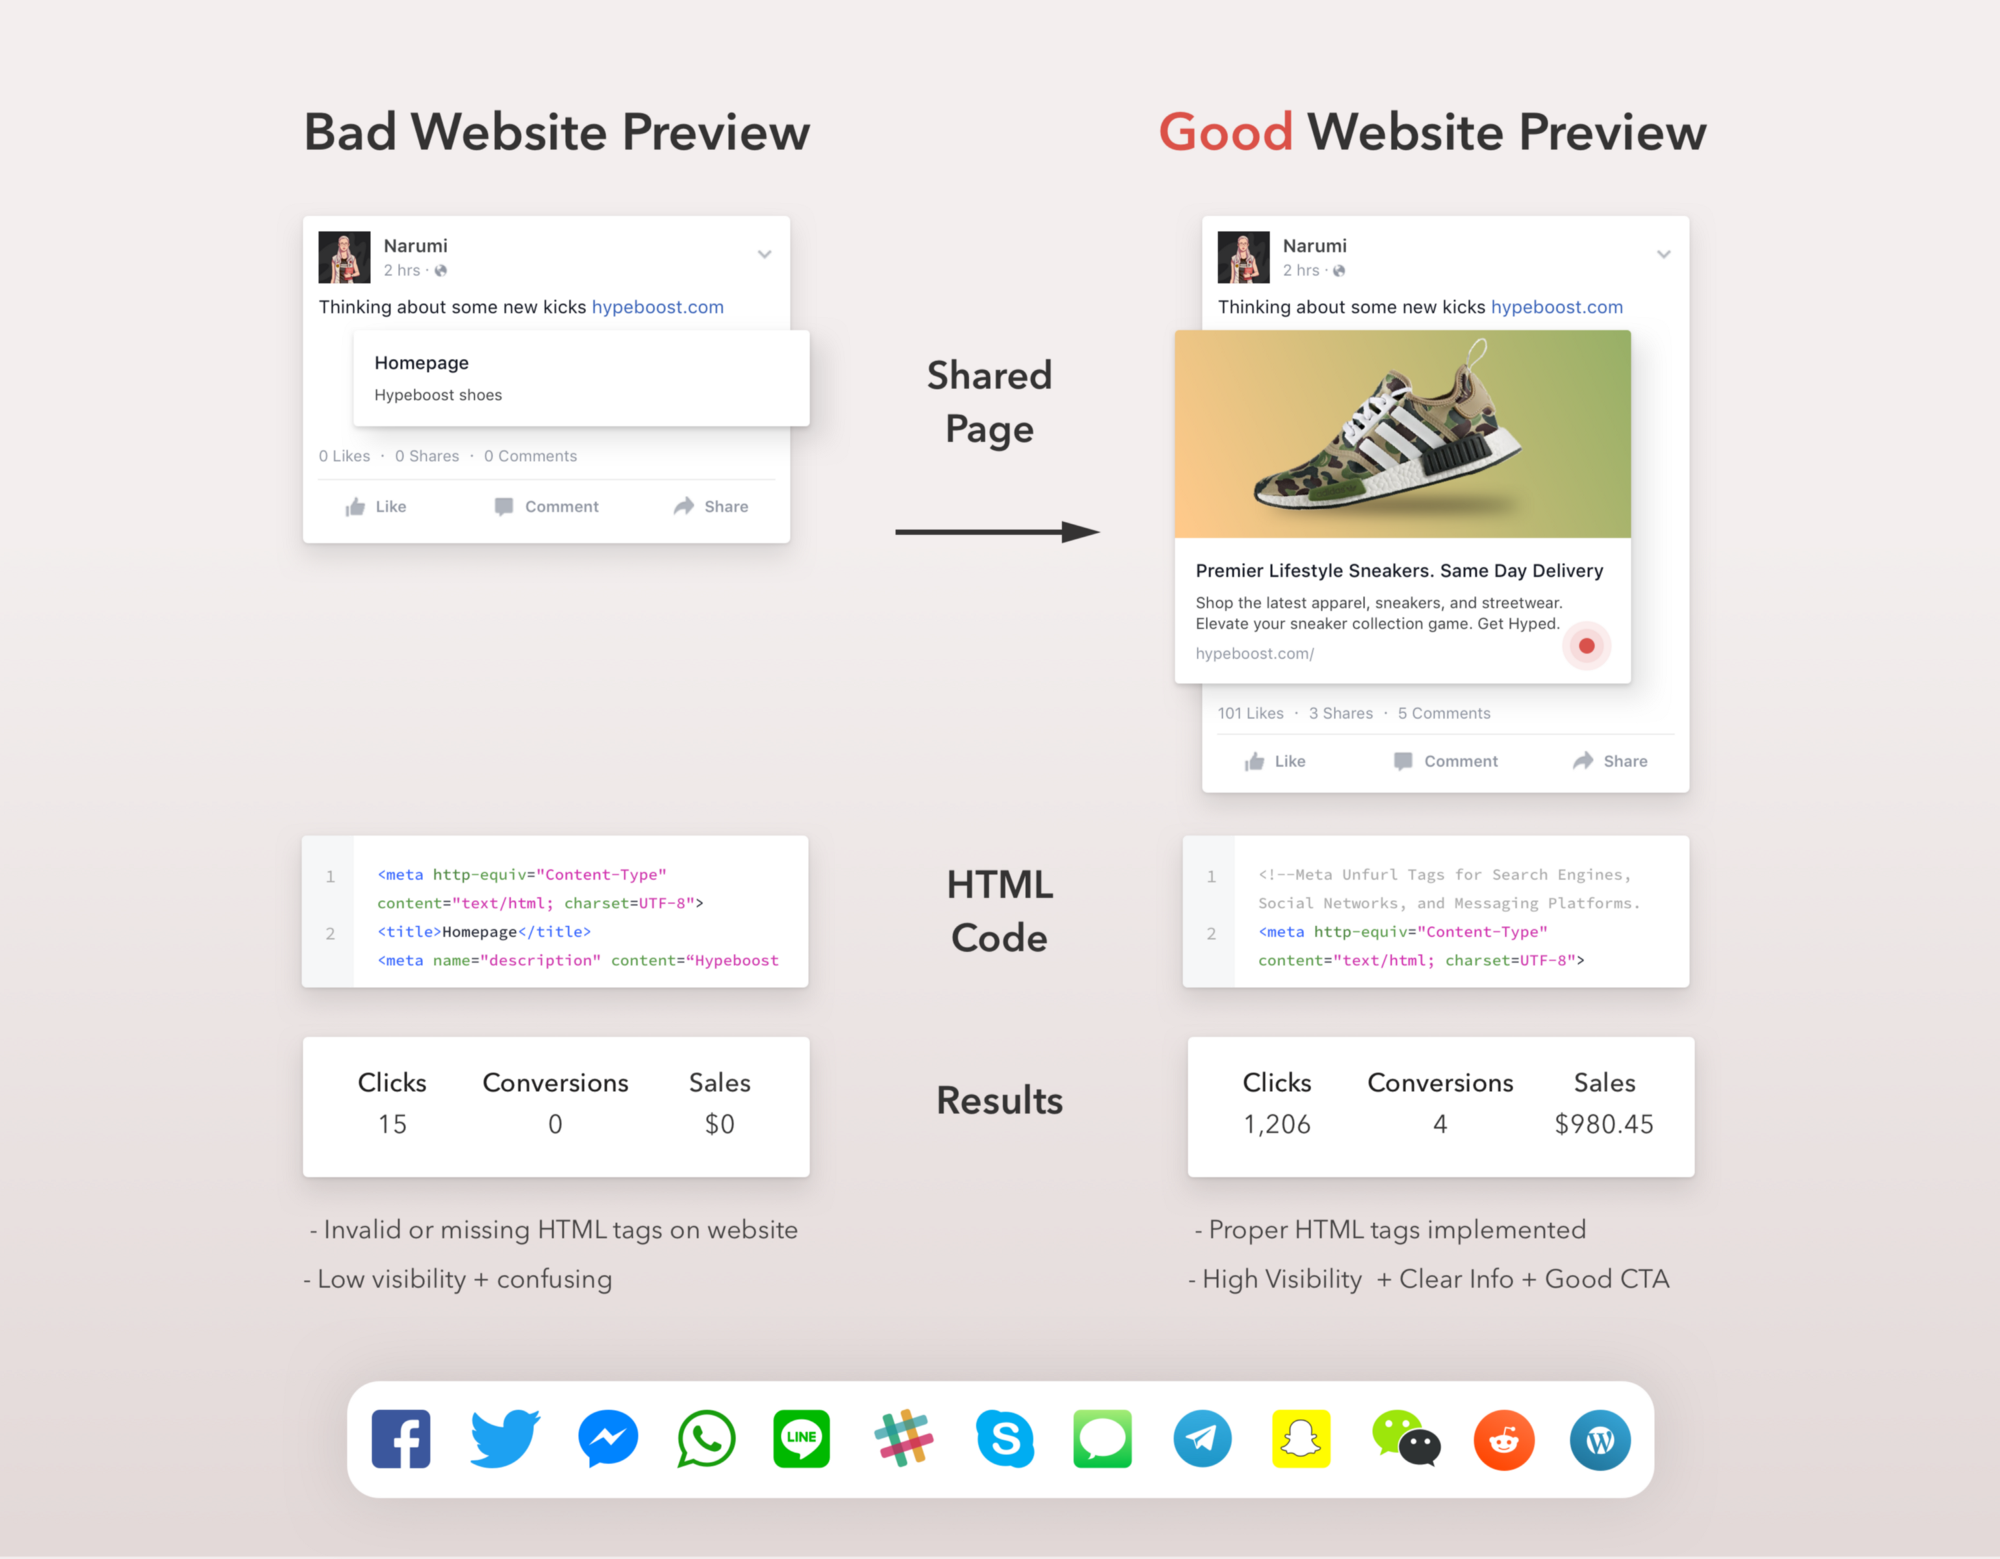 Rich Previews with Examples - Credits: https://kenny.is/building-tools-and-the-future-of-website-previews-unfurls-and-social-meta-tags/